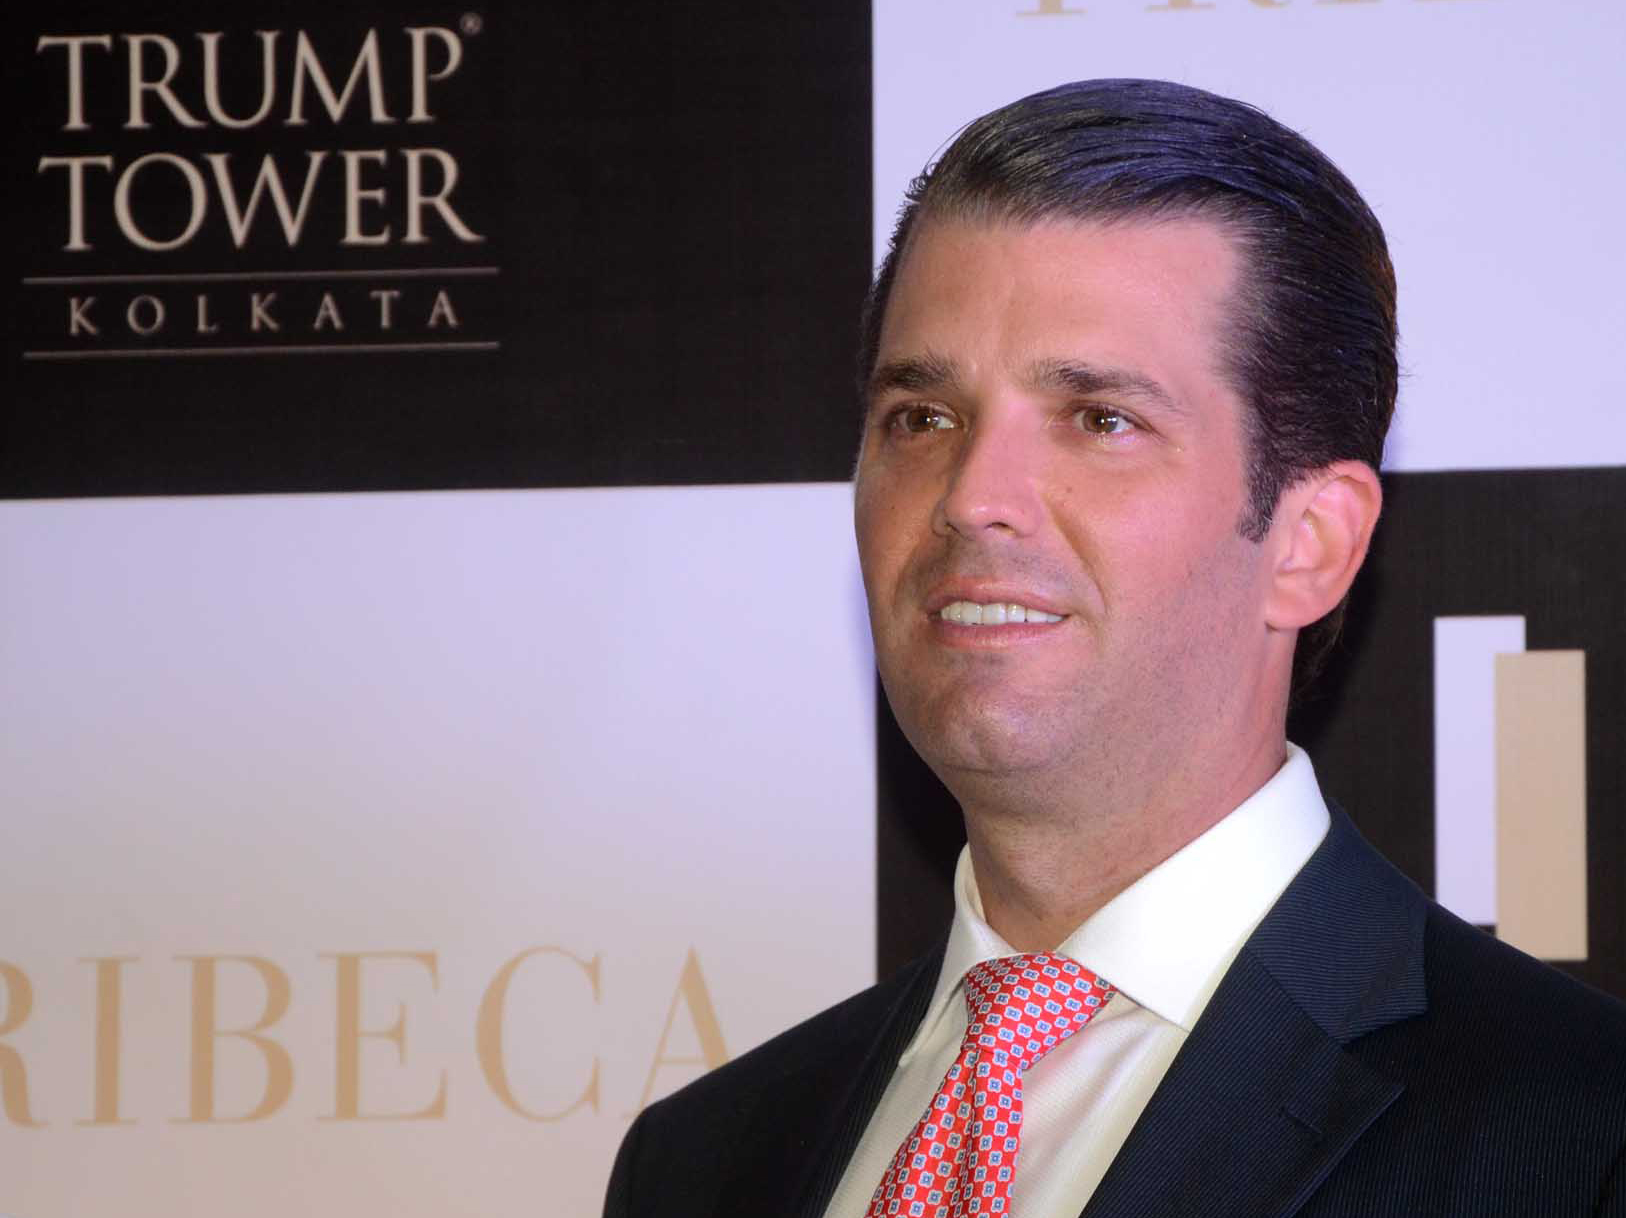 Donald Trump Jr at photo session after visit  Trump Tower, a luxury apartment building, ahead of the visit of Donald Trump Jr on February 21,2018 in Kolkata,India. (Photo by Debajyoti Chakraborty/NurPhoto)